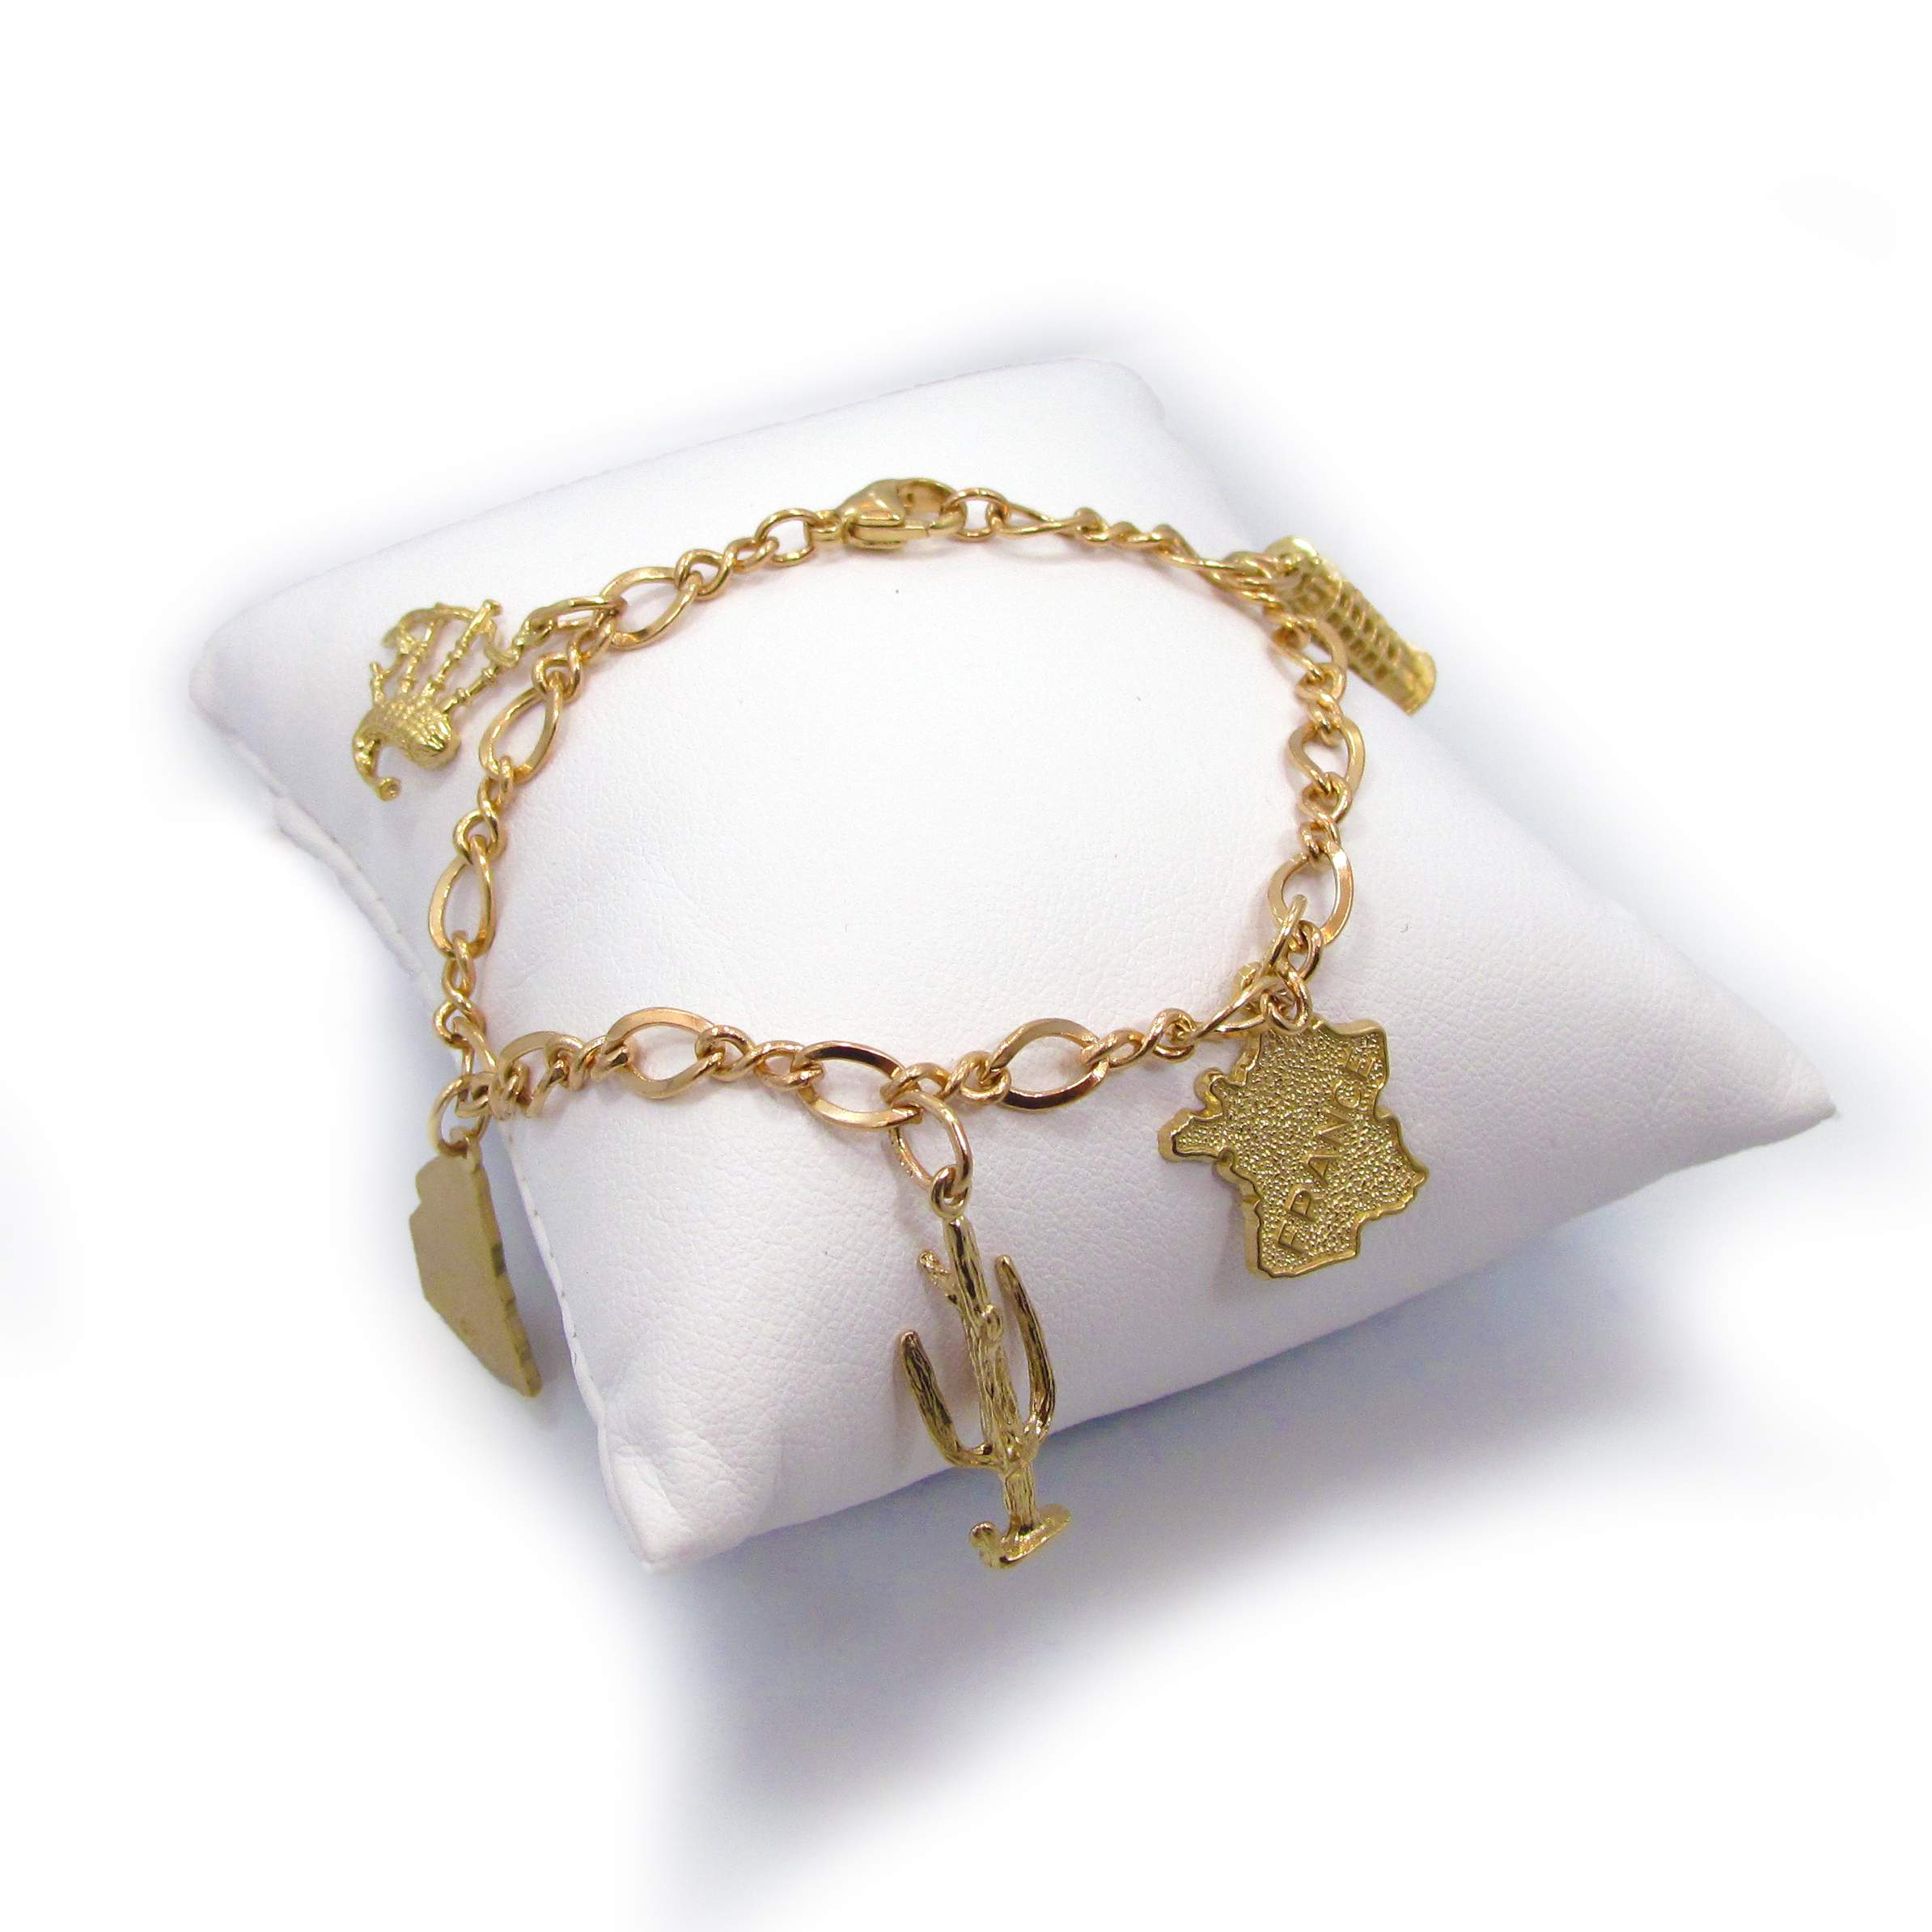 Customizable 14k Yellow Gold Charm Bracelet